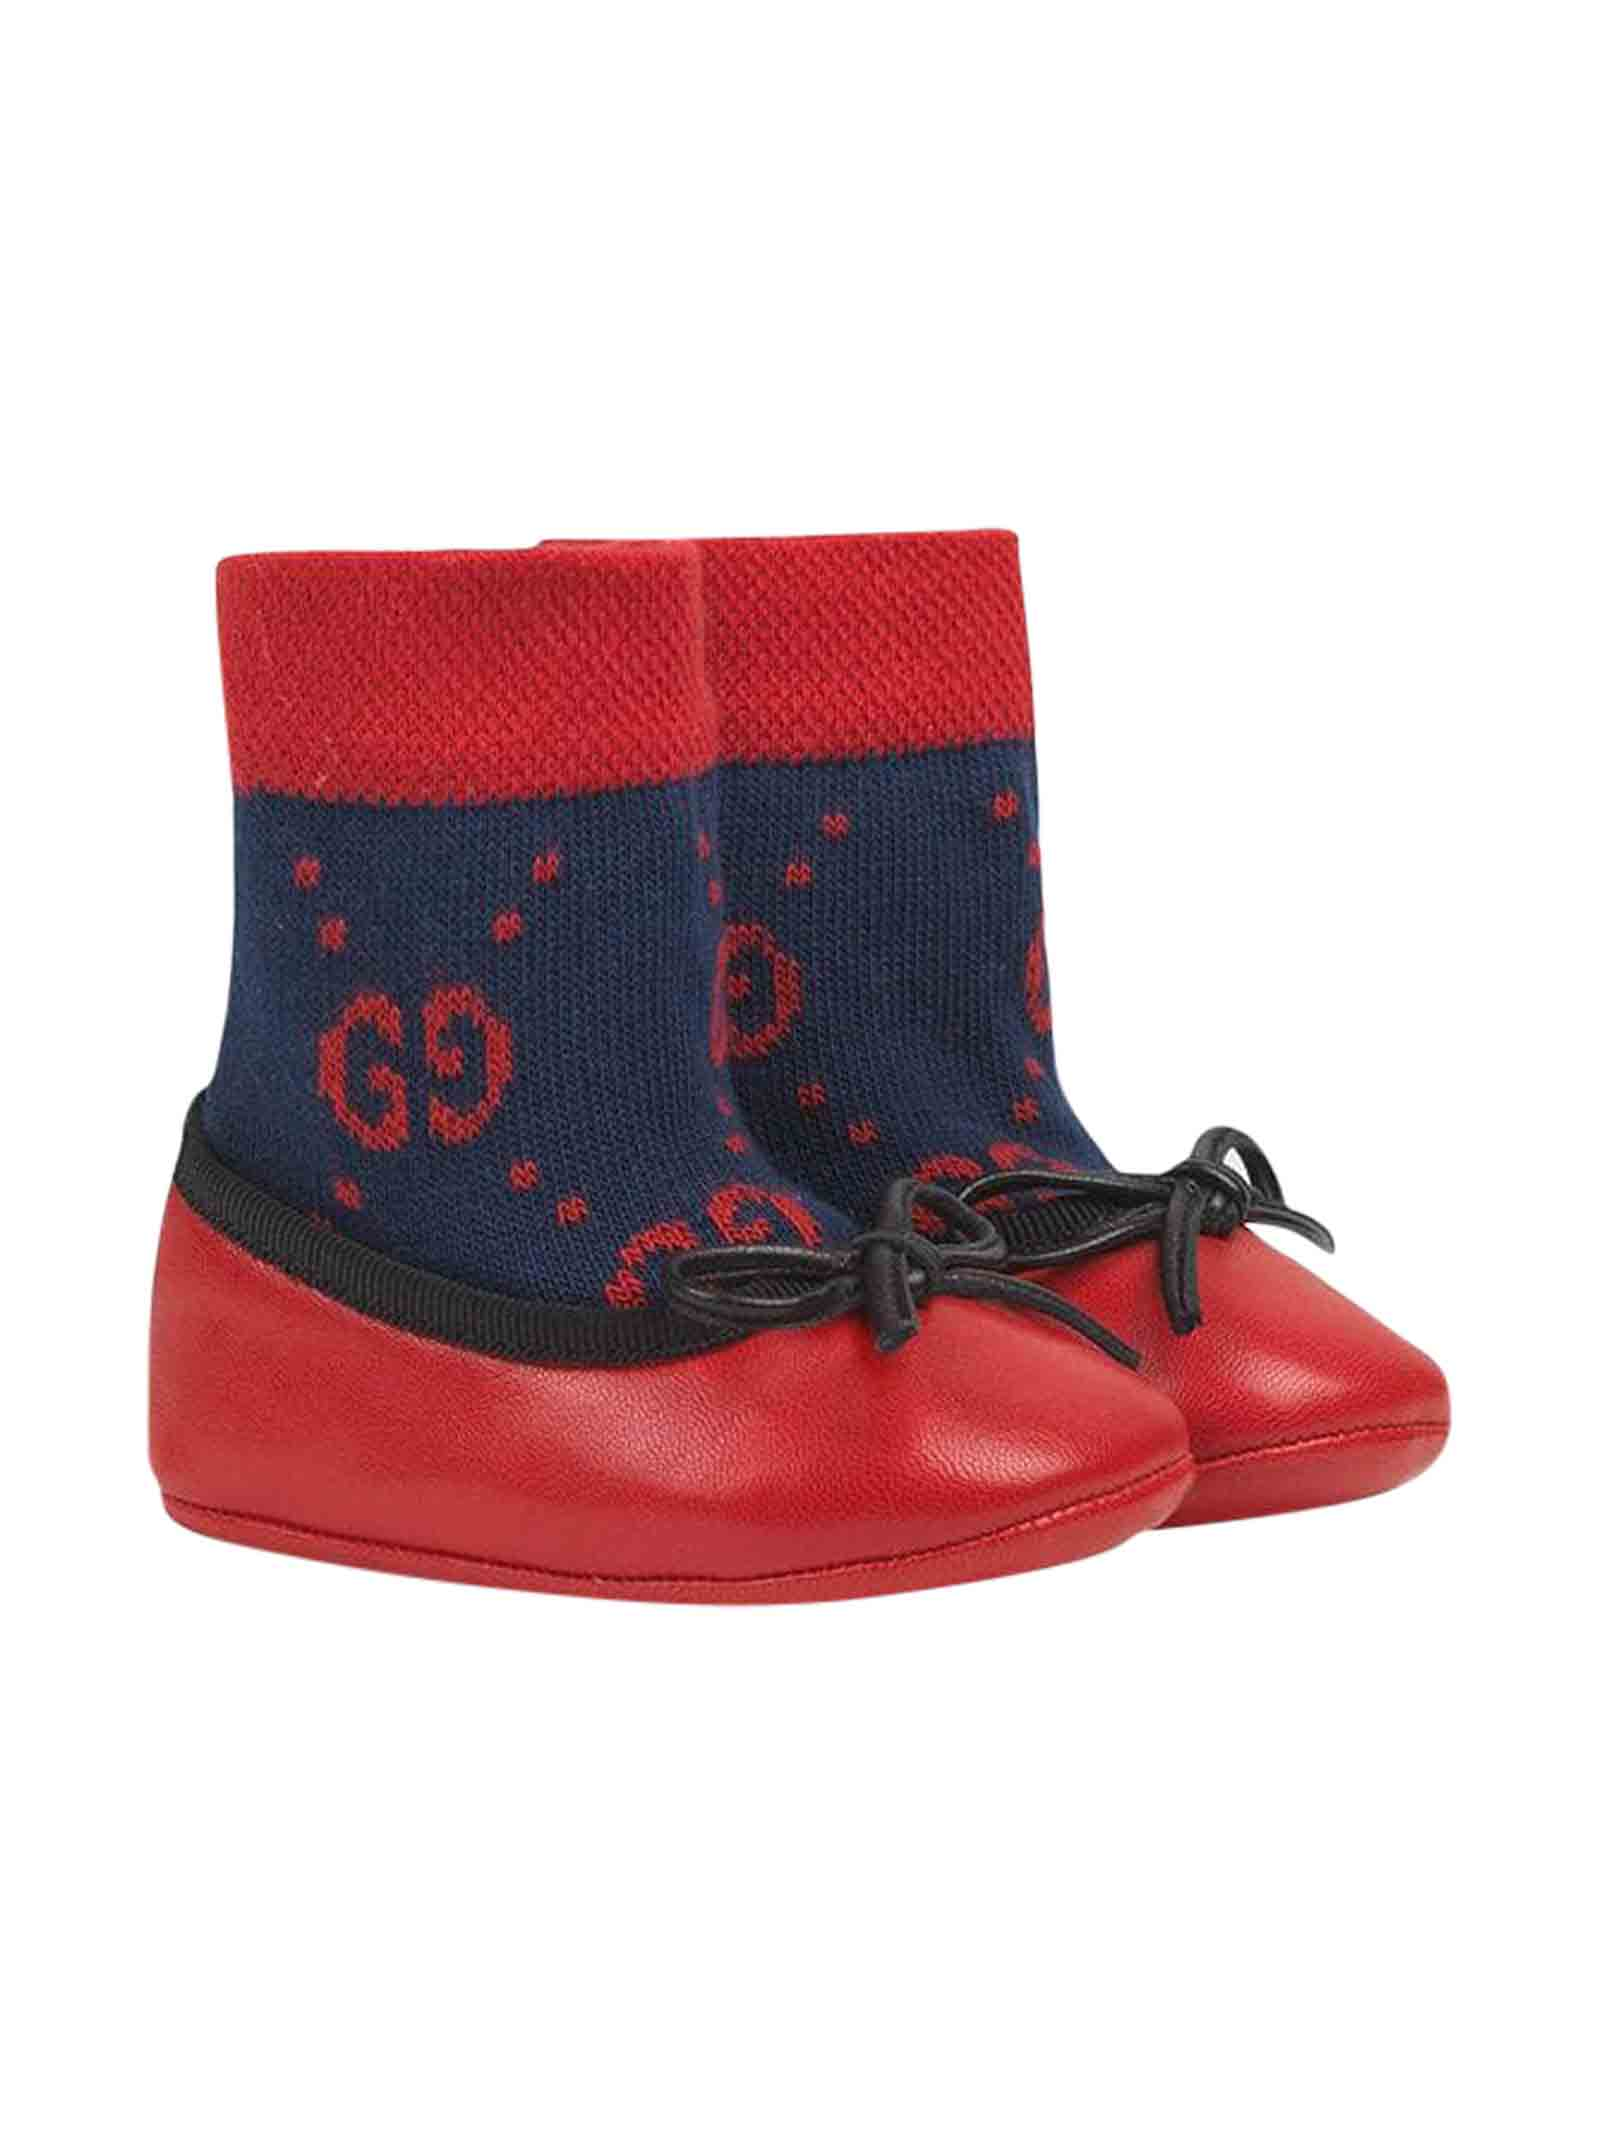 Gucci Shoes   italist, ALWAYS LIKE A SALE